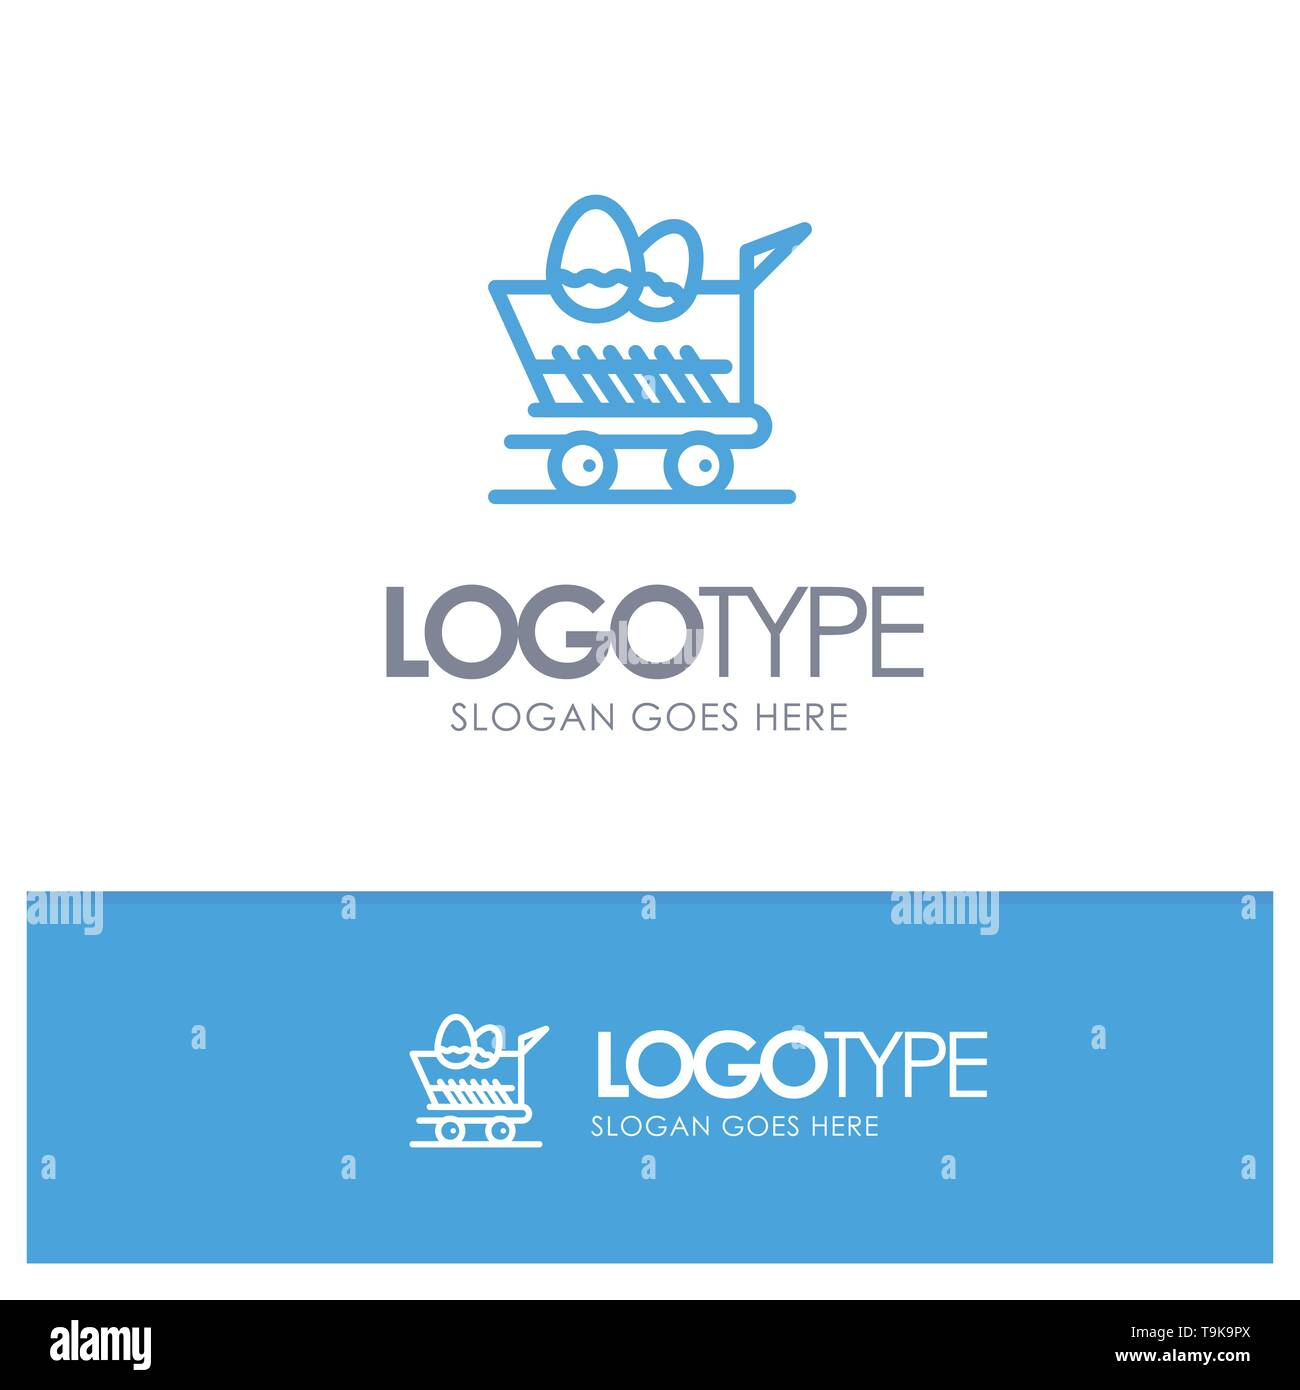 Cart, Trolley, Easter, Shopping Blue Outline Logo Place for Tagline - Stock Image